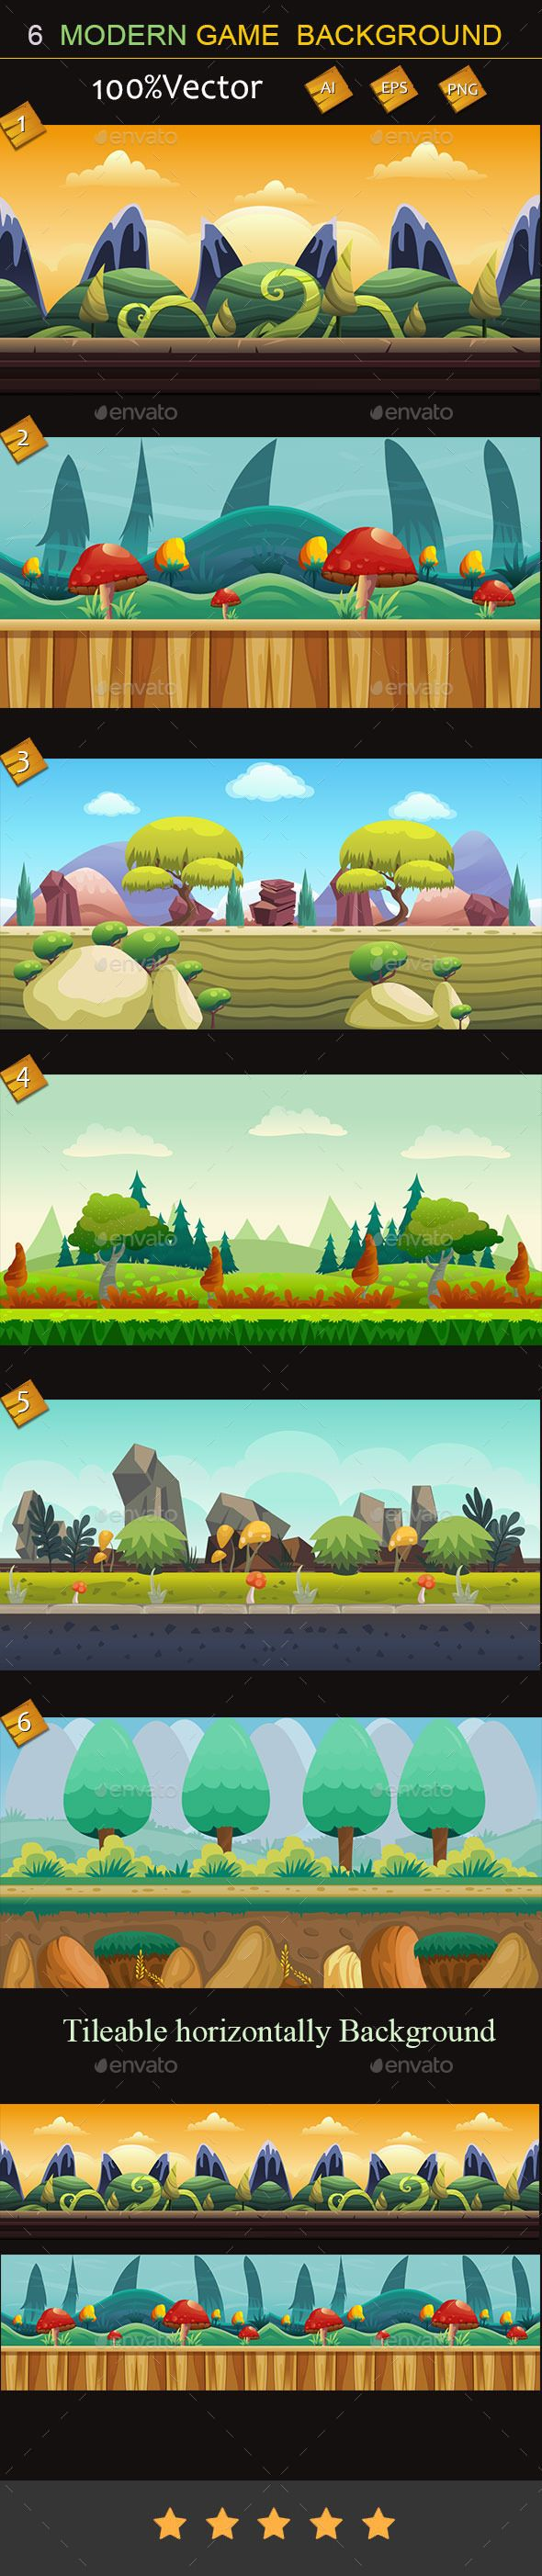 6 Modern Game Background Download here: https://graphicriver.net/item/6-modern-game-background/10065873?ref=KlitVogli